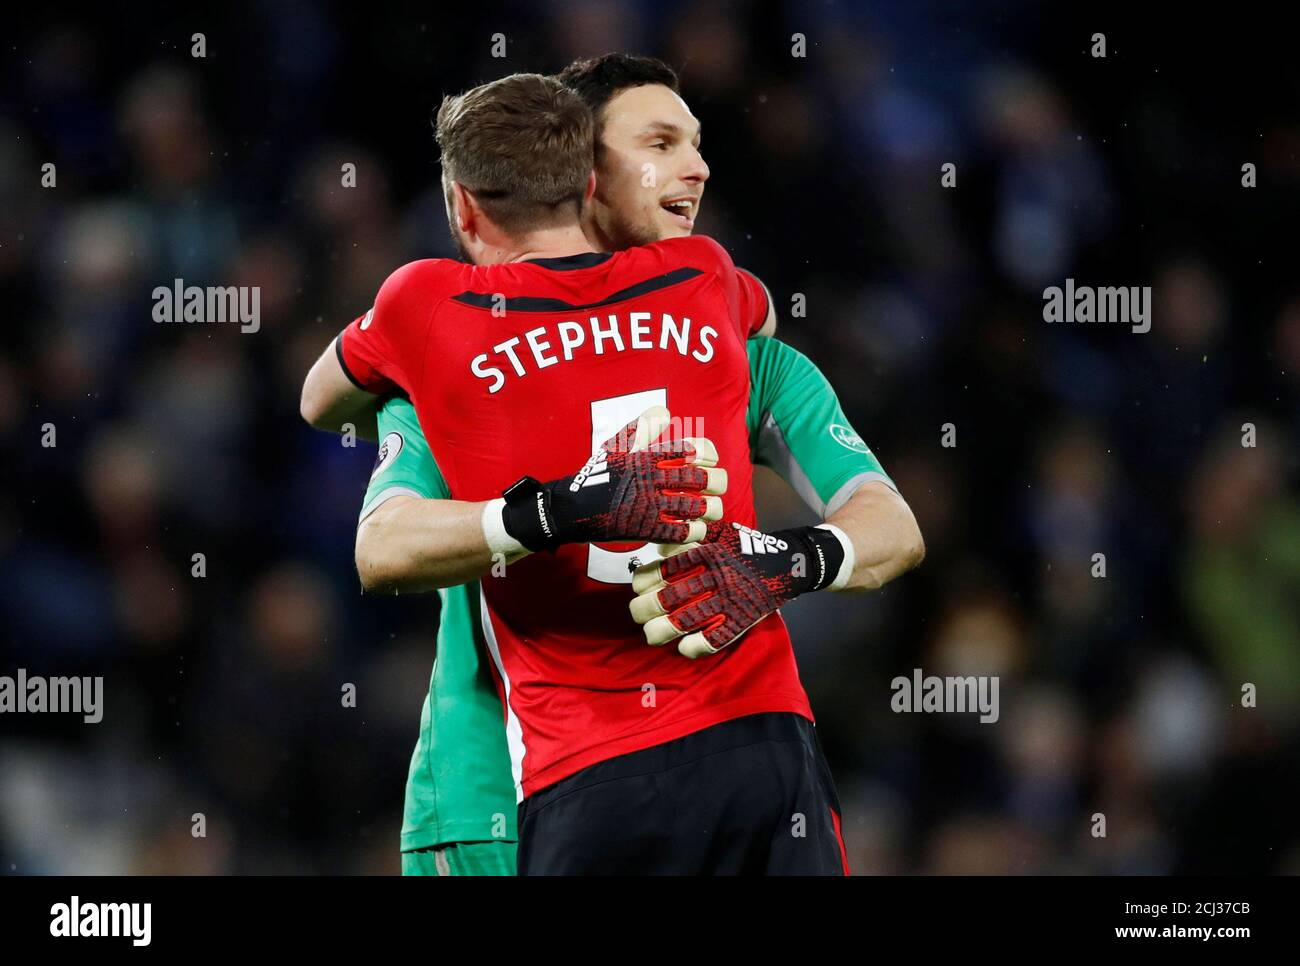 Soccer Football Premier League Leicester City V Southampton King Power Stadium Leicester Britain January 12 2019 Southampton S Jack Stephens And Alex Mccarthy Celebrate At The End Of The